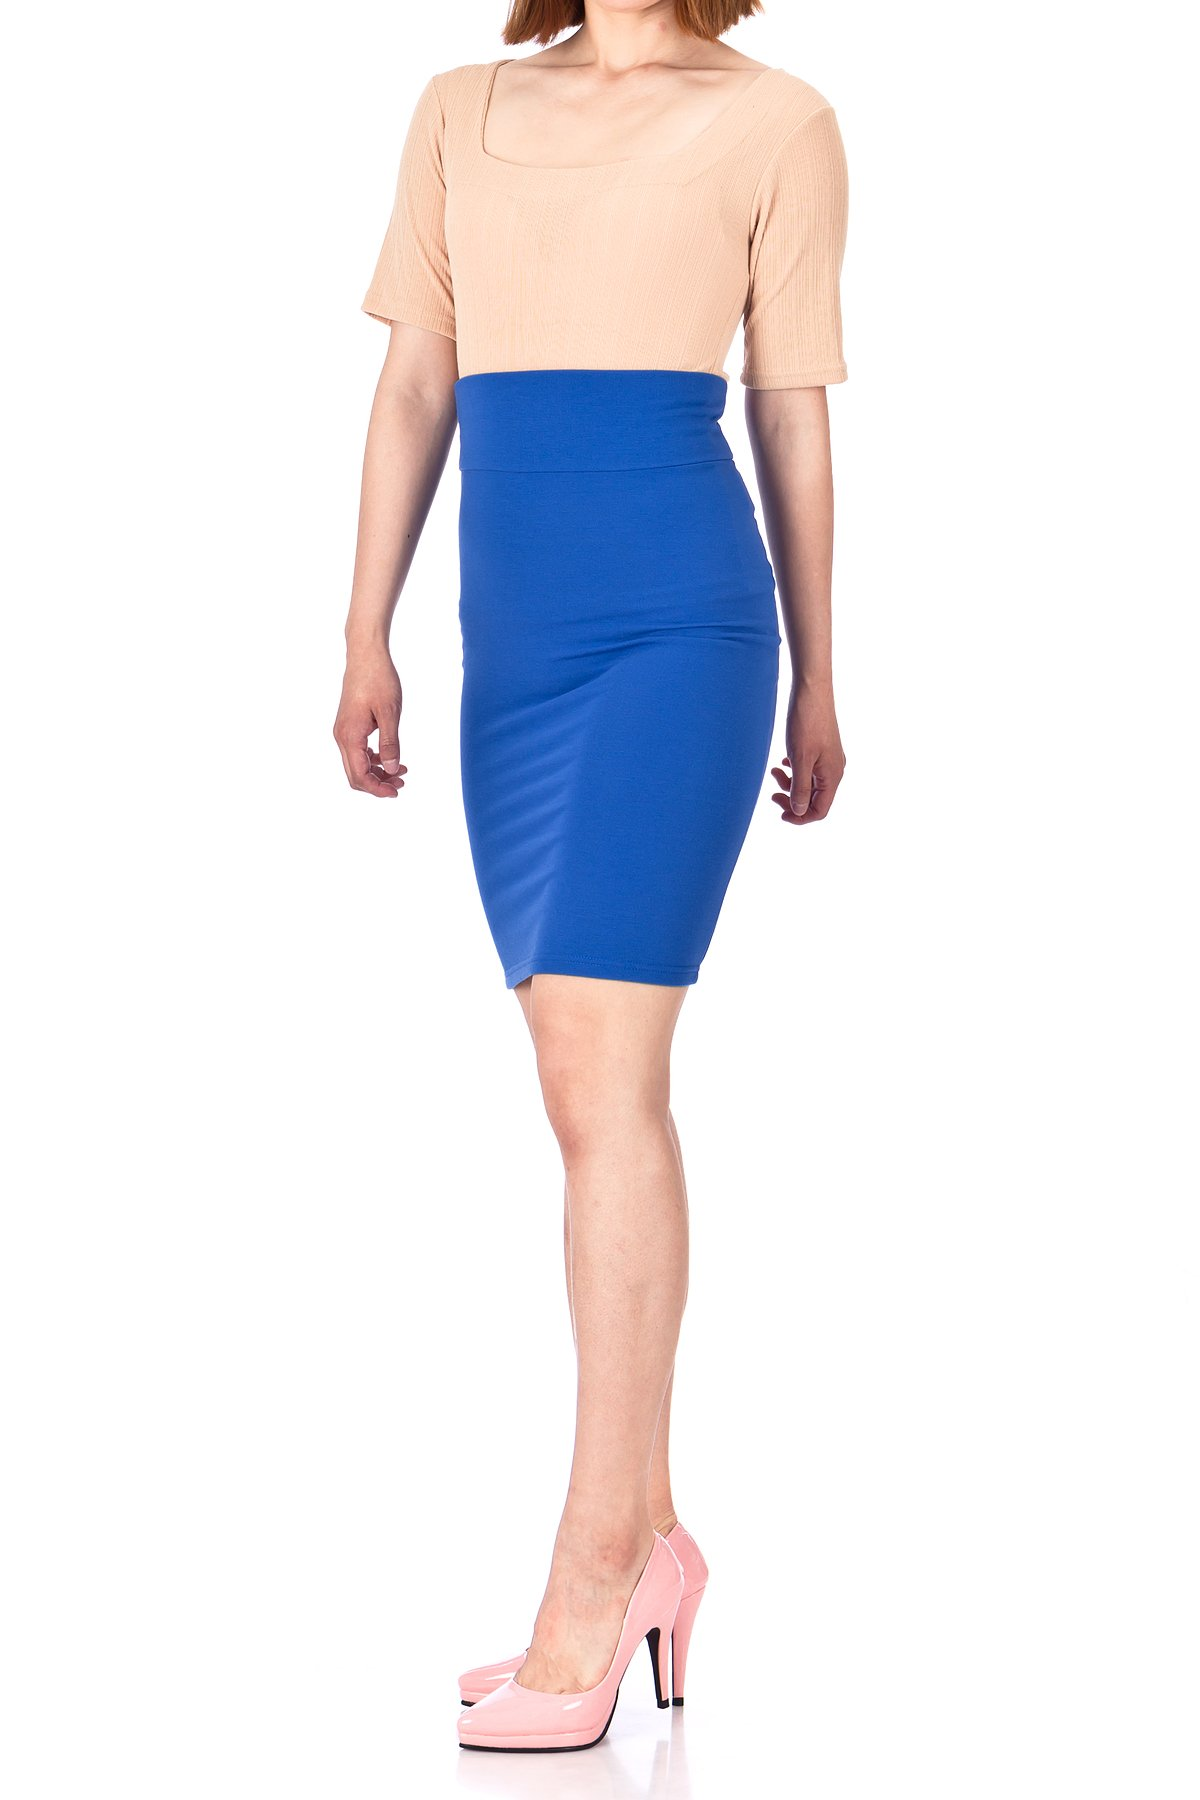 Every Occasion Stretch Pull on Wide High Waist Bodycon Pencil Knee Length Midi Skirt Royal Blue 03